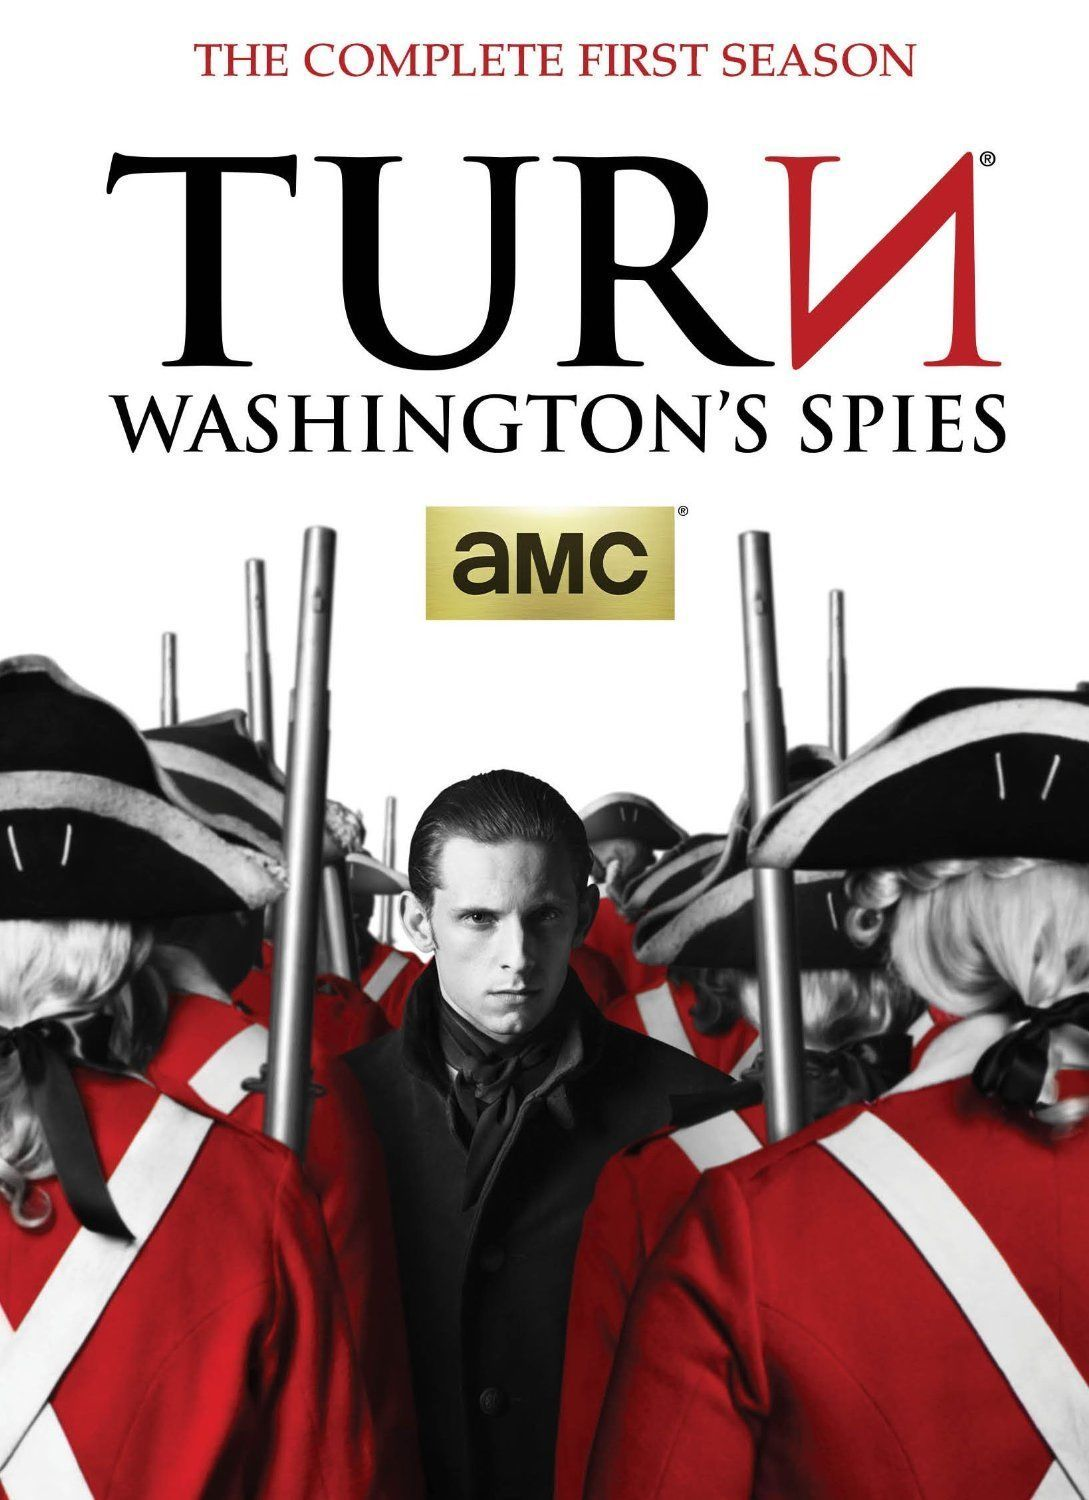 TURN: Washington's Spies Complete First Season 1 (3 DVD Set) New AMC TV Series